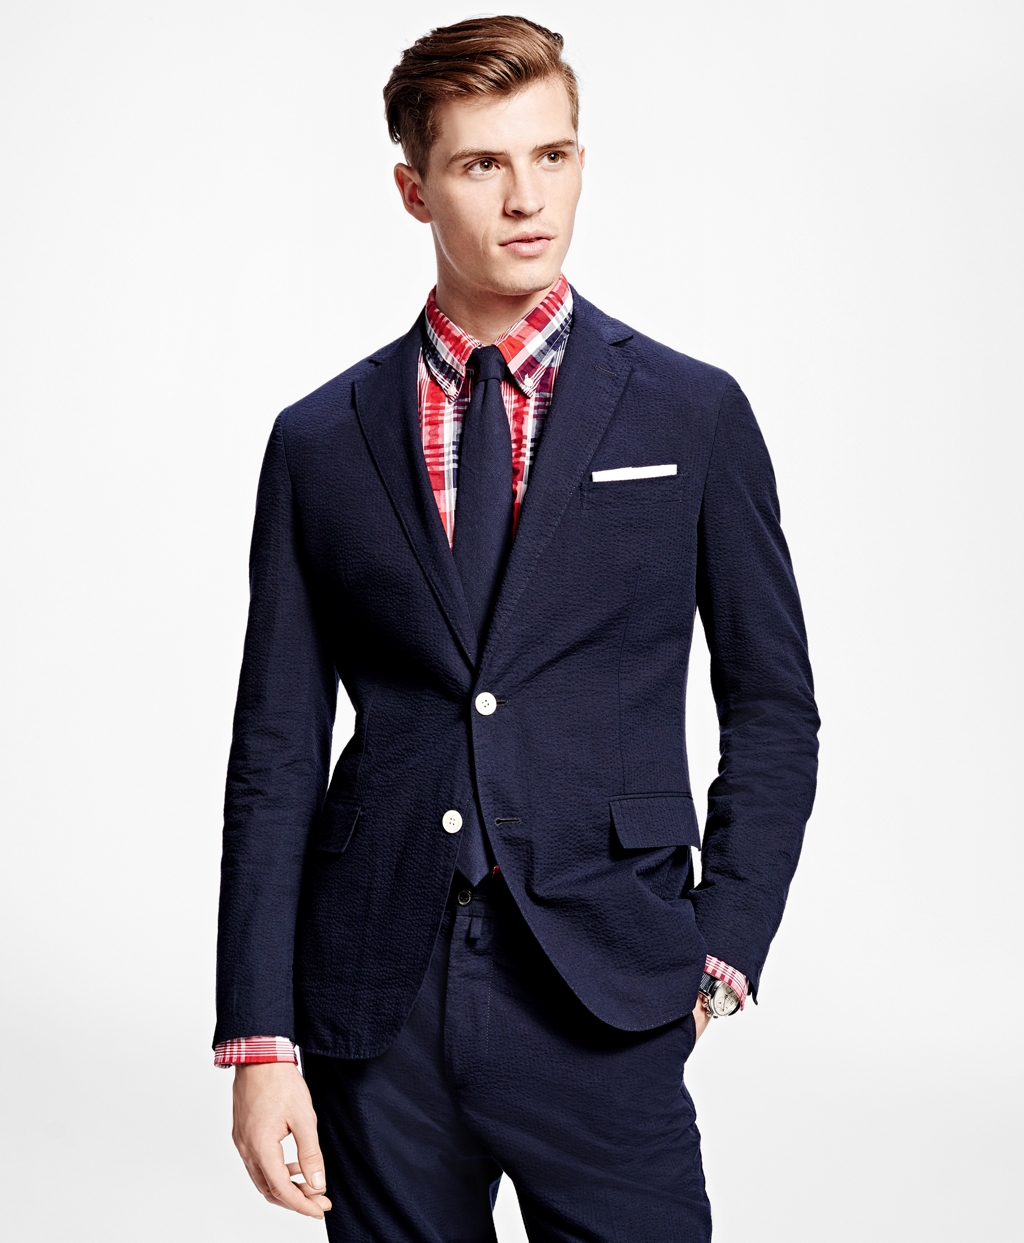 Related Keywords Suggestions For Sport Coat